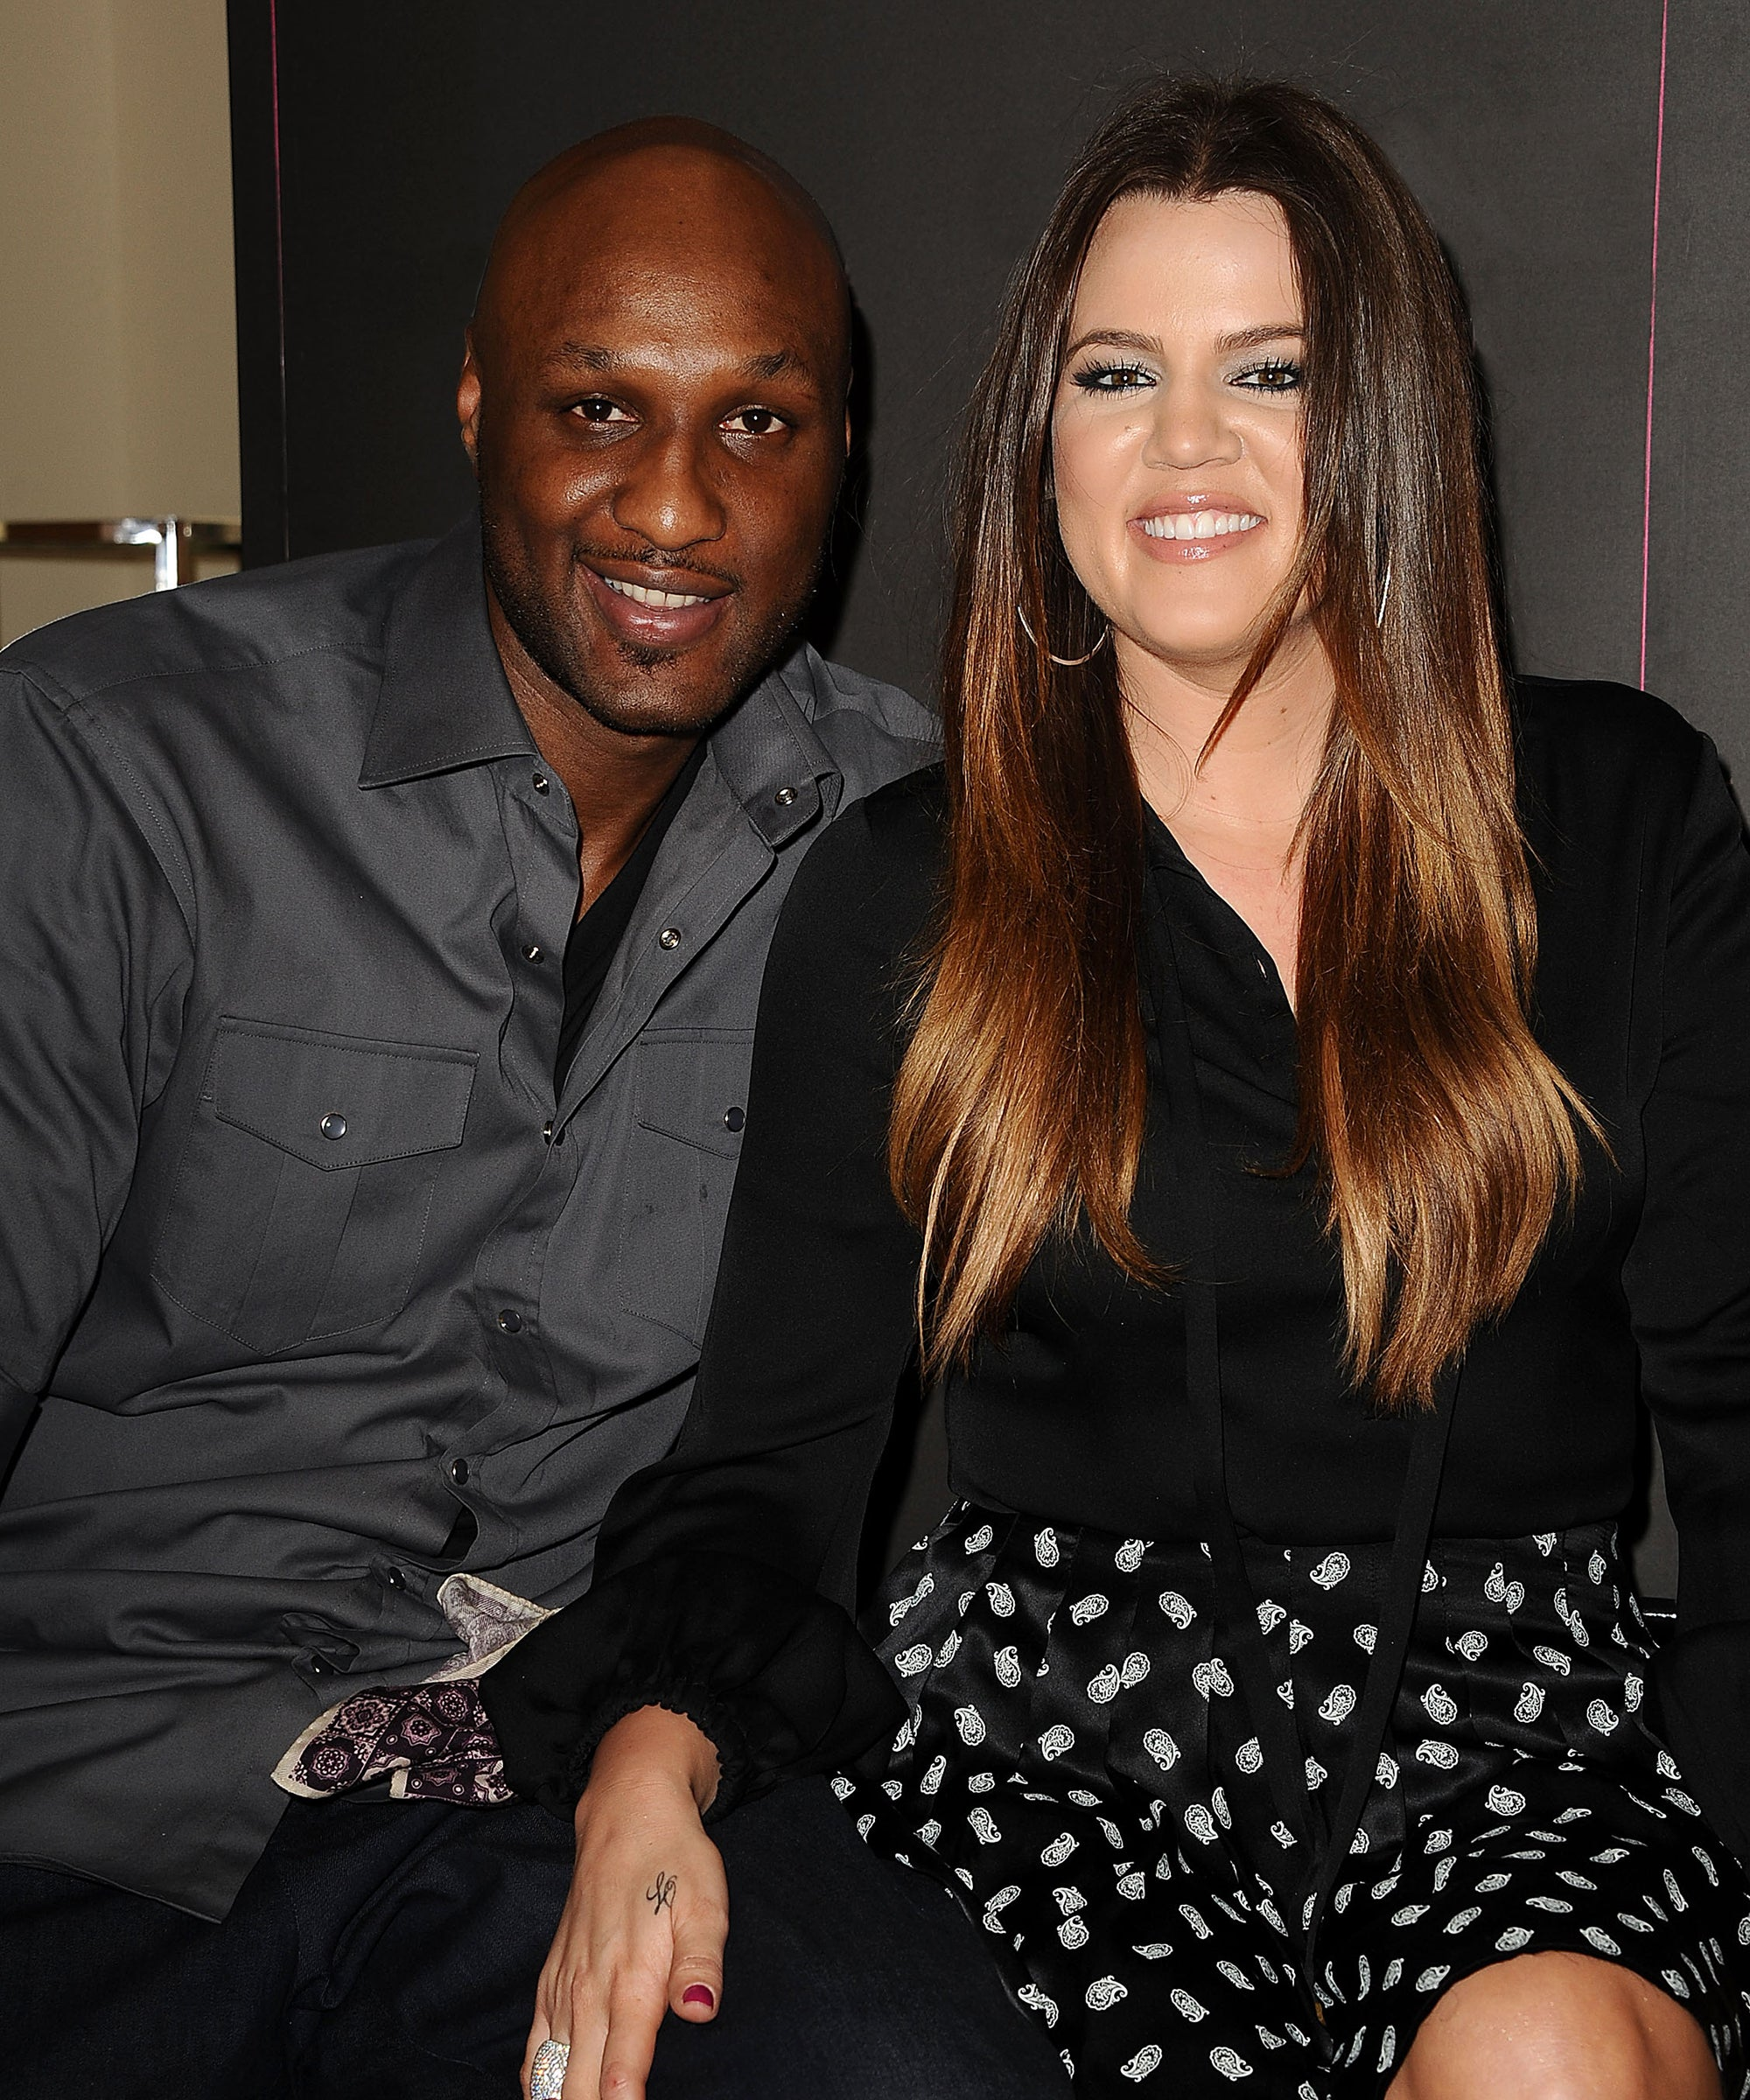 Khloé Kardashian Learned A Secret About Her Mom In Lamar Odom's Tell-All